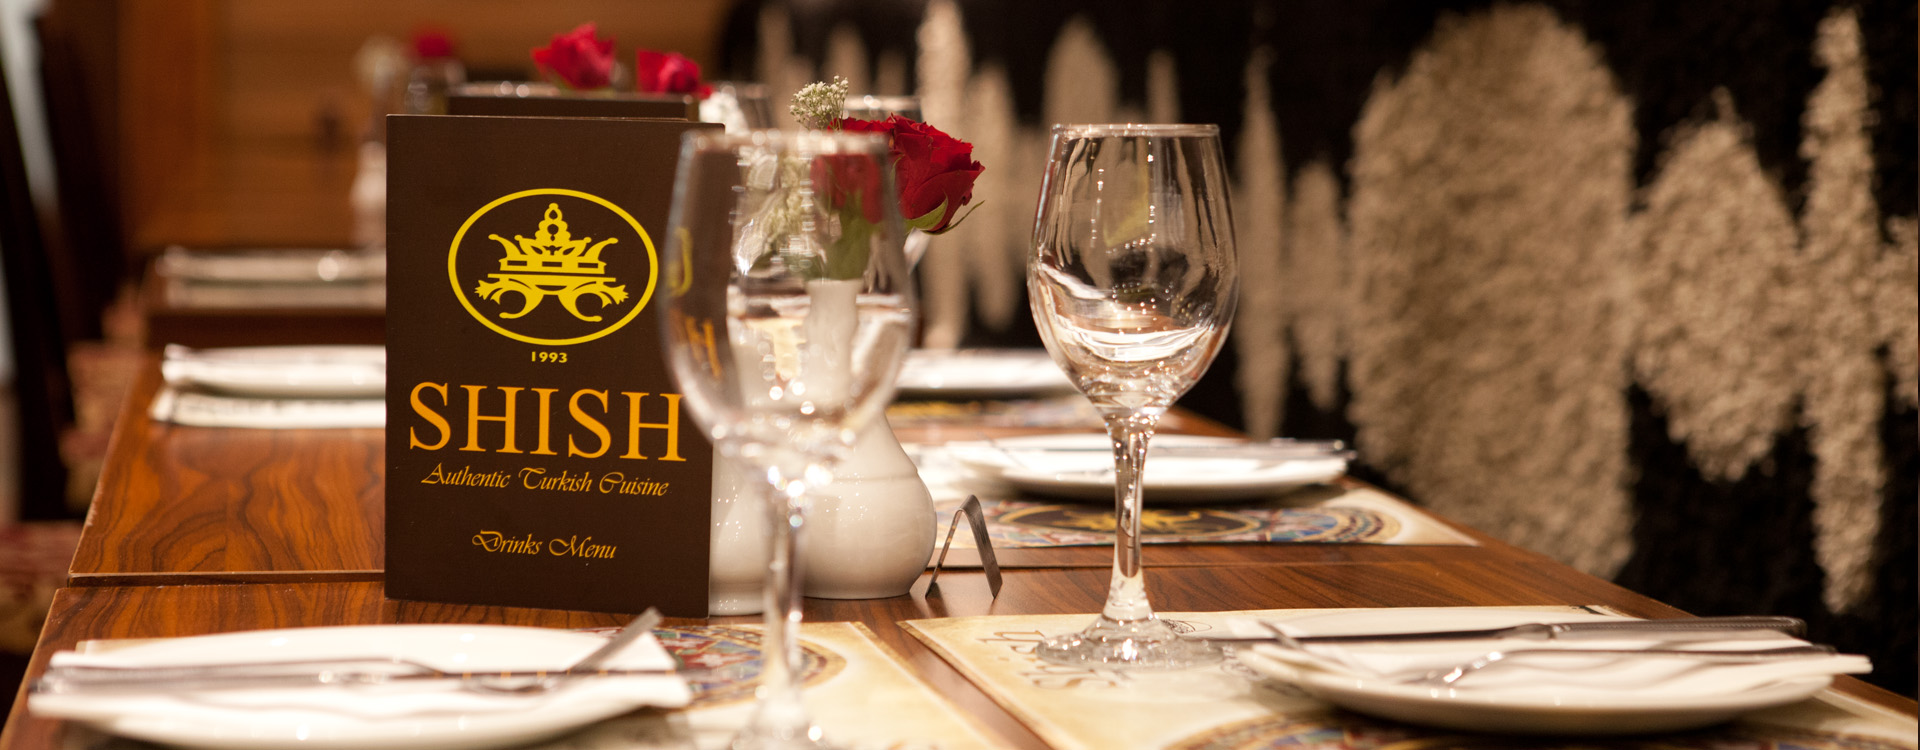 shish-restaurant-sidcup